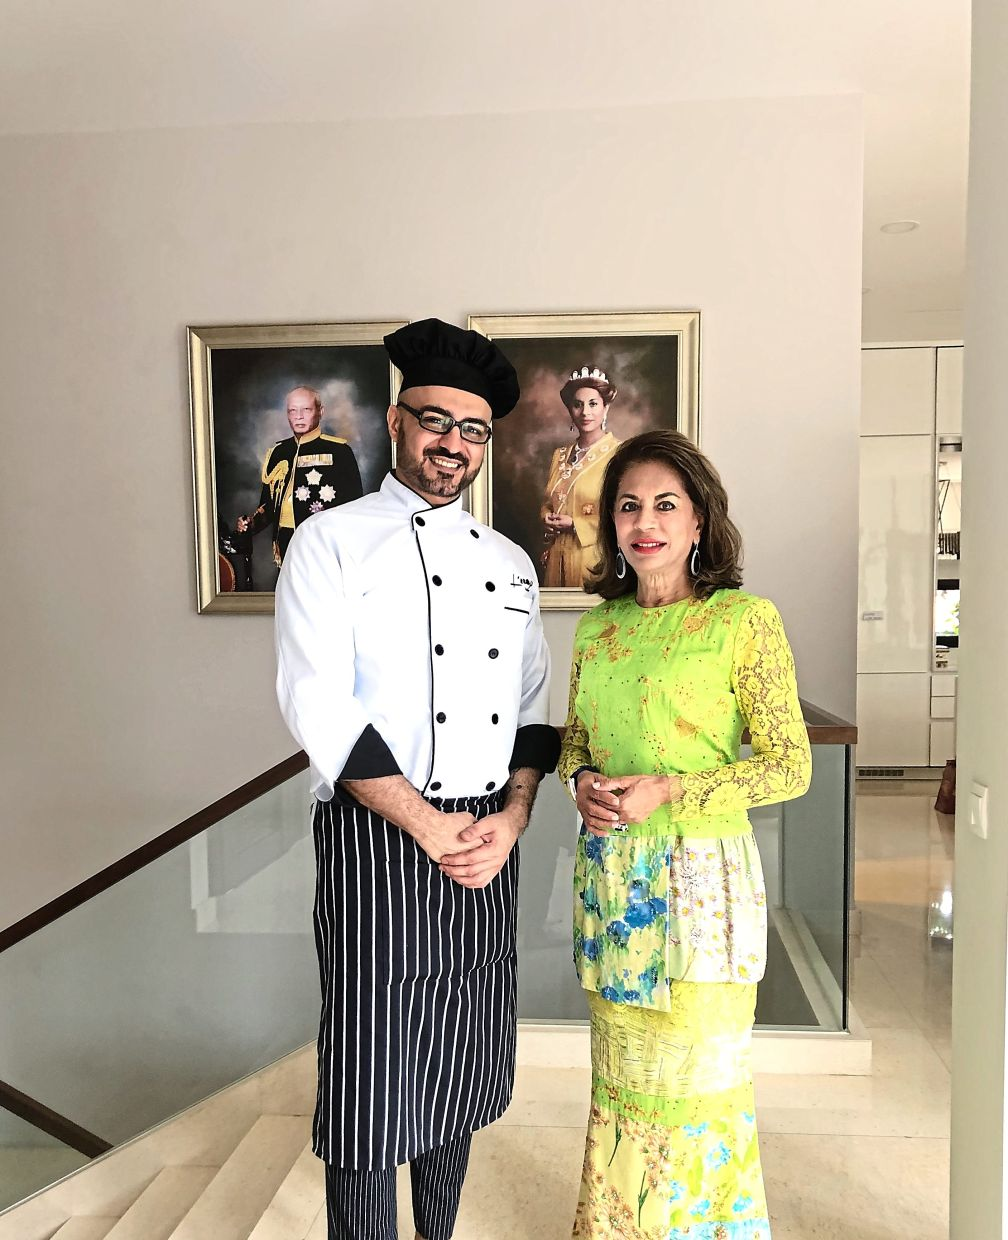 One of Hossein's friends who paved the way for him to become a personal chef is the former Sultanah Kalsom of Pahang. — HOSSEIN KARIMI